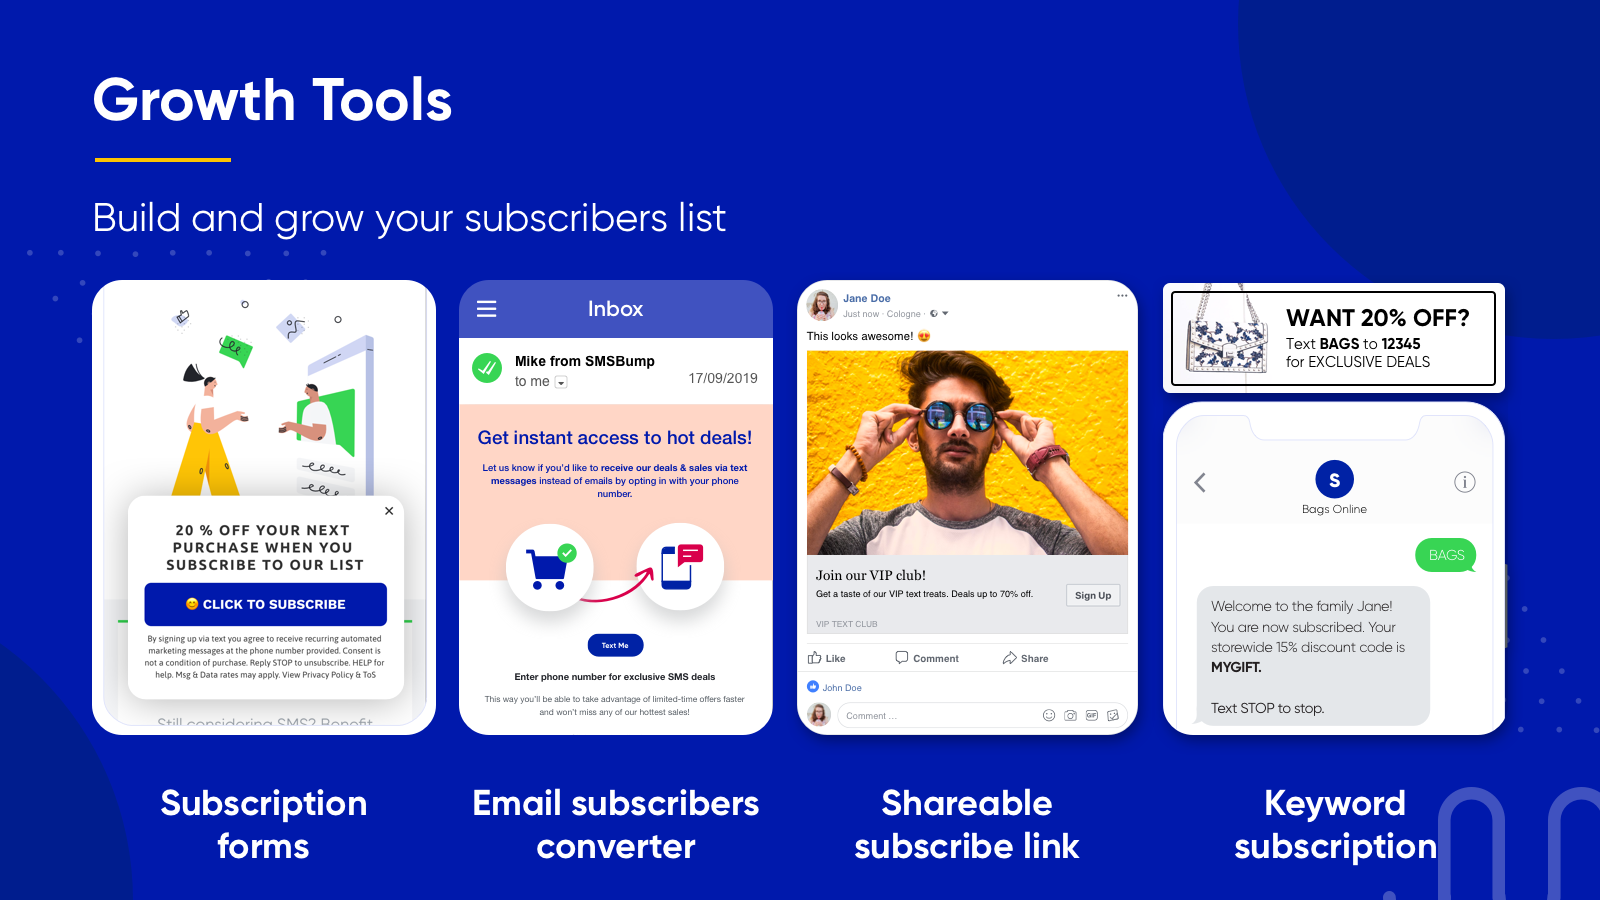 Growth Tools - Build and grow your subscribers list